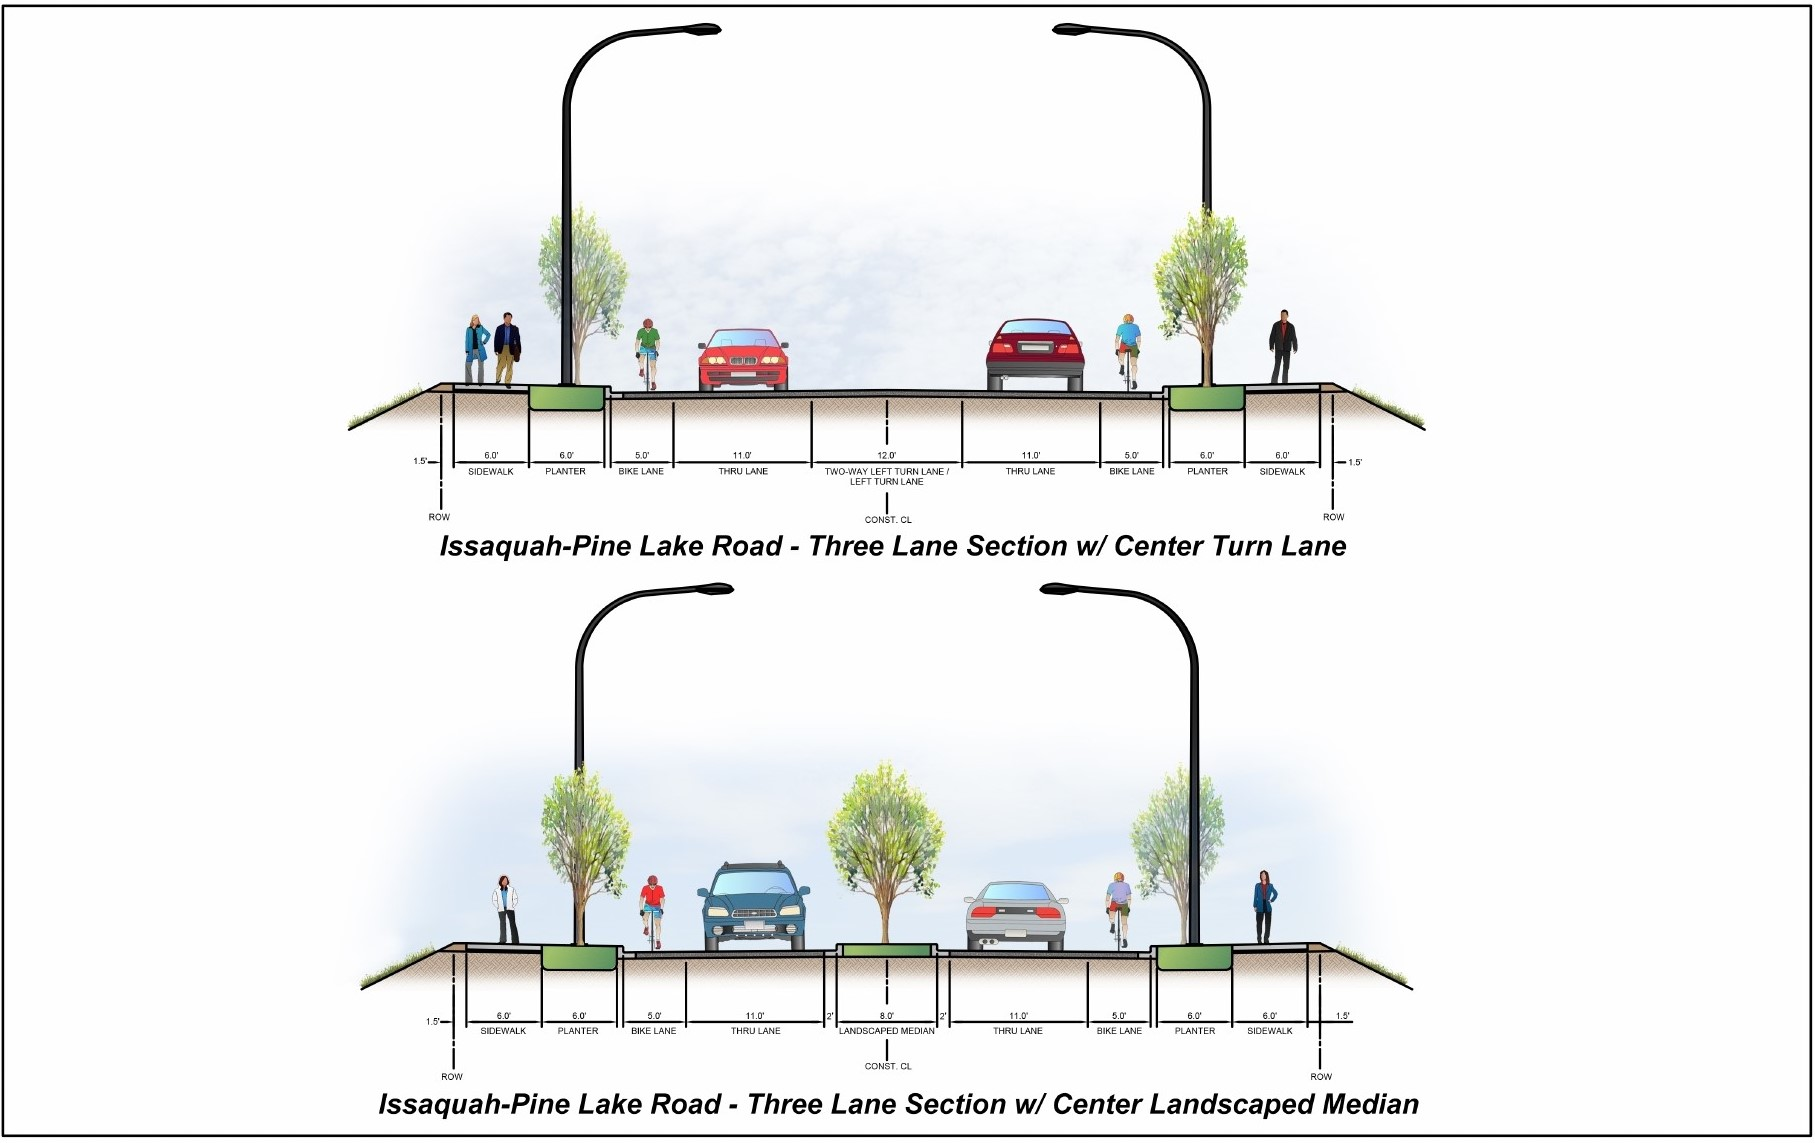 two different cross-sections of Issaquah-Pine Lake Road. The first is a three-lane section with center turn lane.